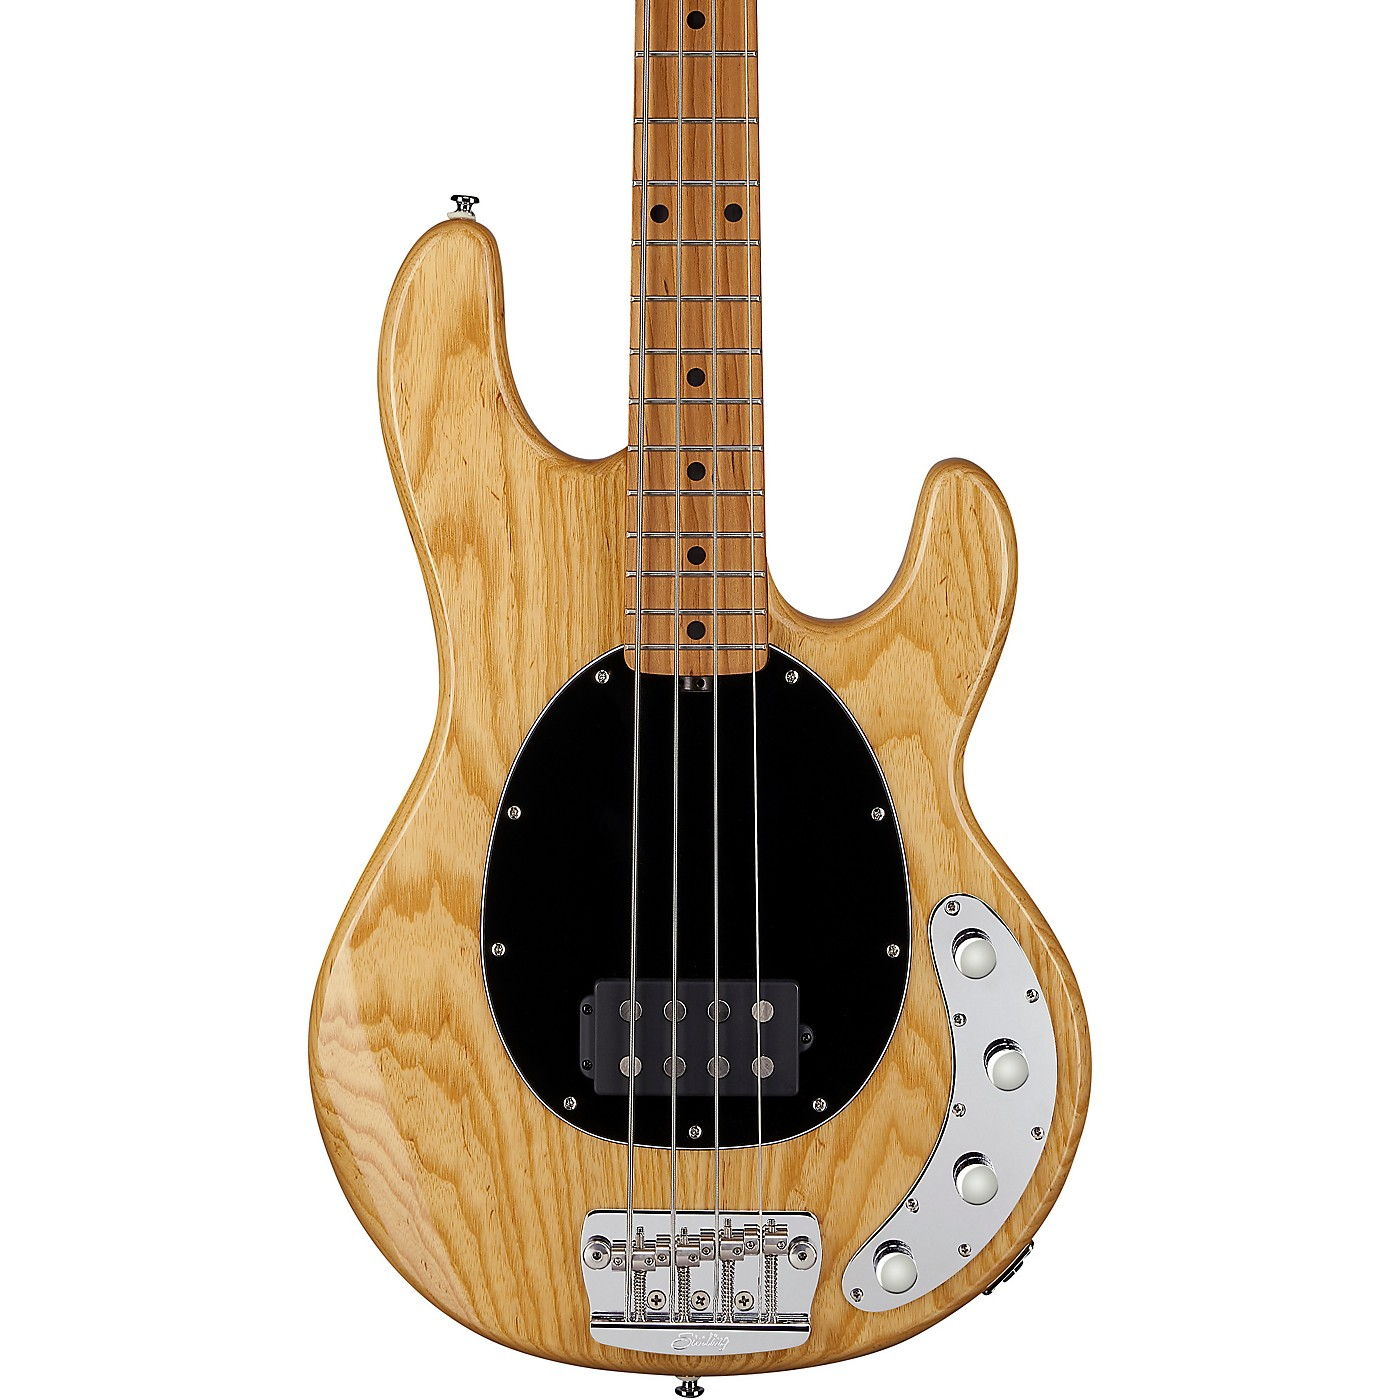 Sterling by Music Man StingRay Roasted Maple Neck Bass thumbnail